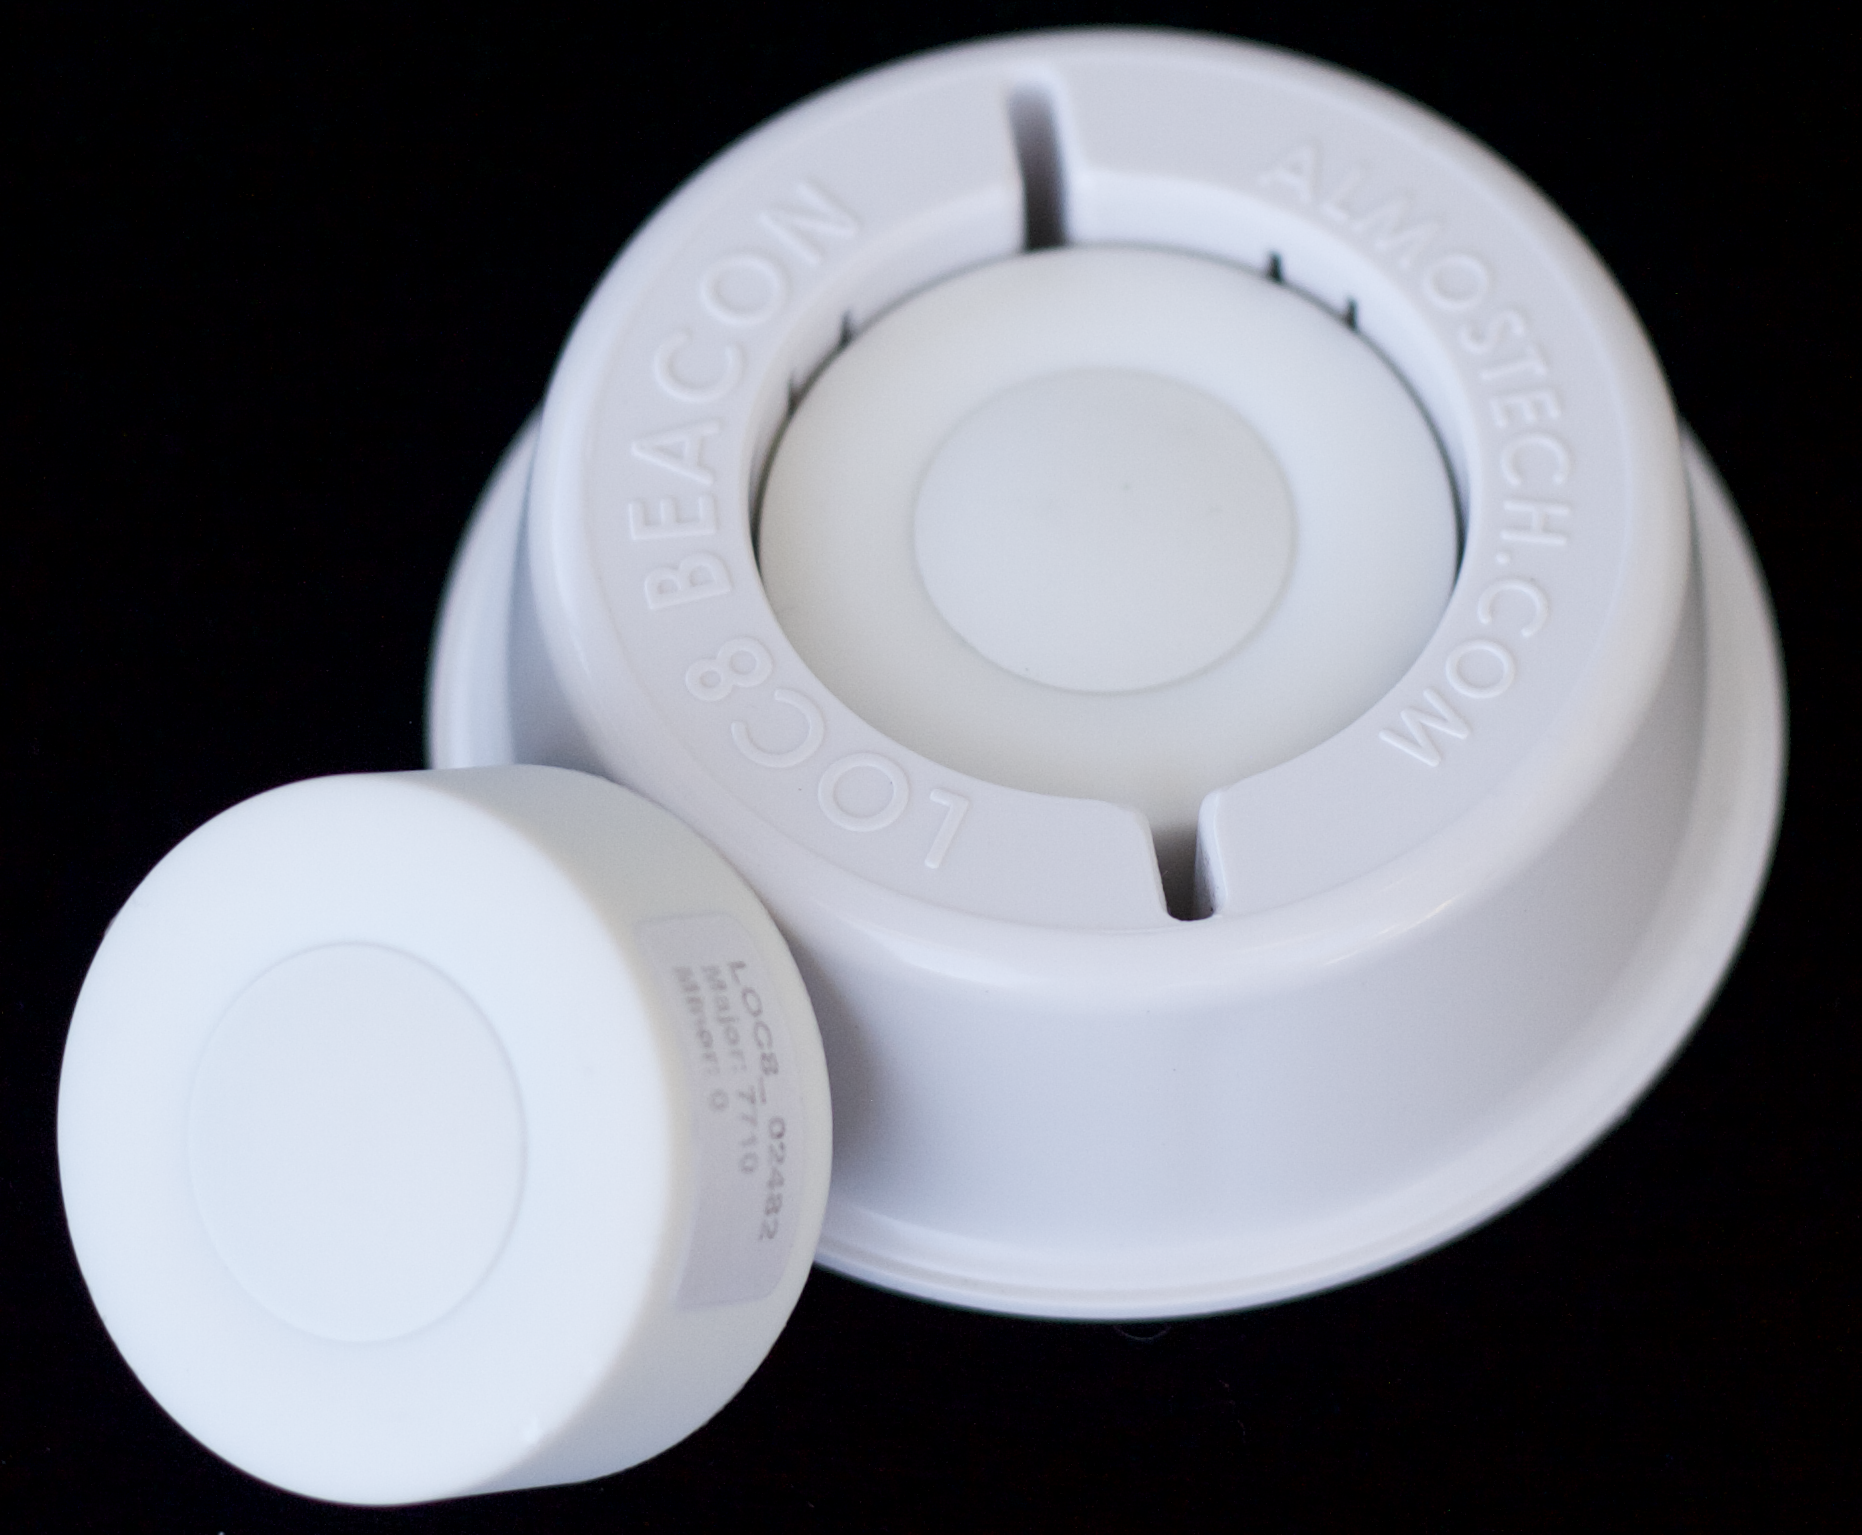 BLE Beacon in LOC8 Custom Surround for quick and easy installation. No more table modifications.